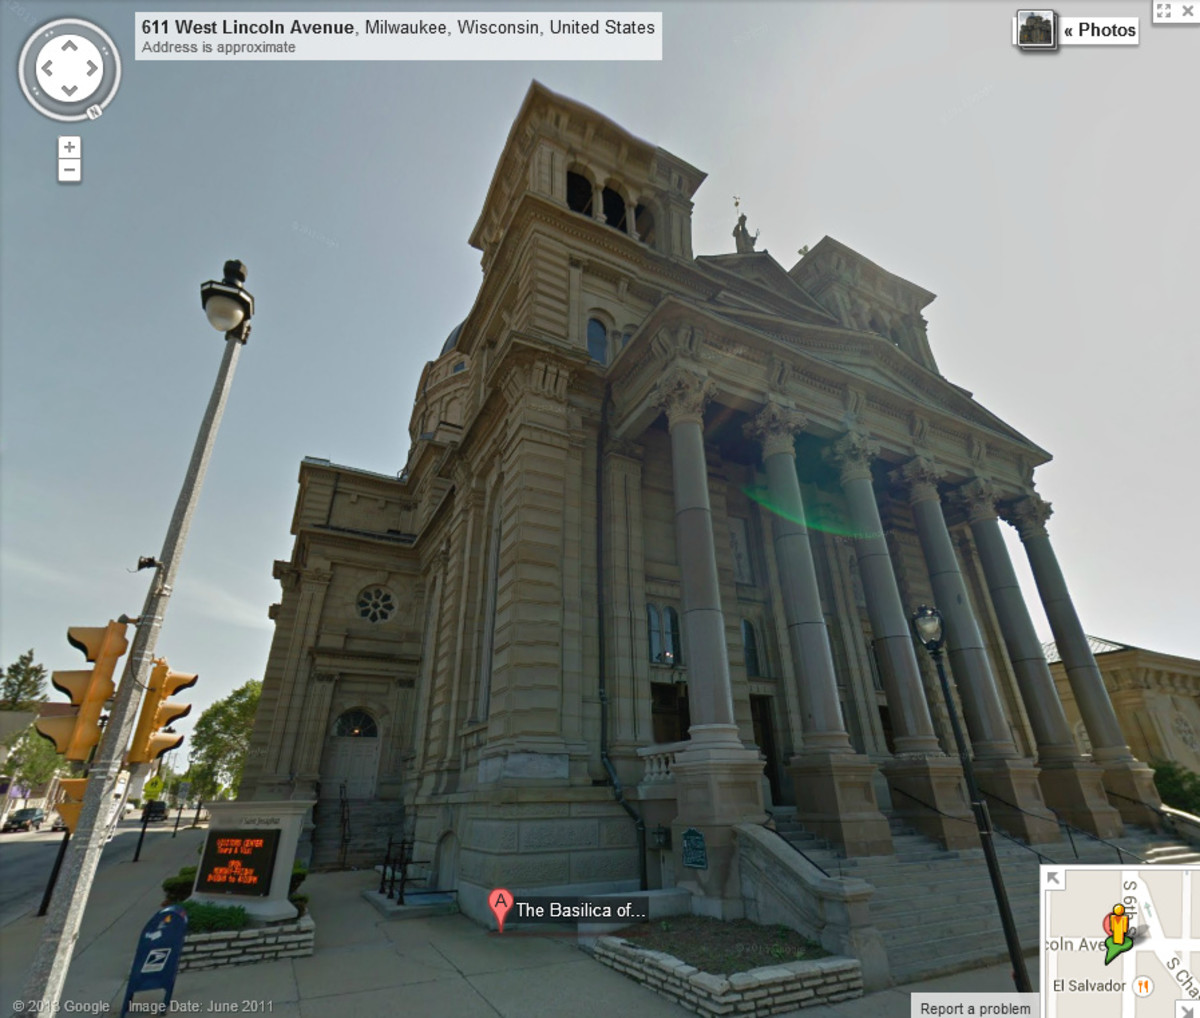 The street view of St. Josaphat Basilica in Milwaukee gives you a great taste of the stunning exterior architecture.